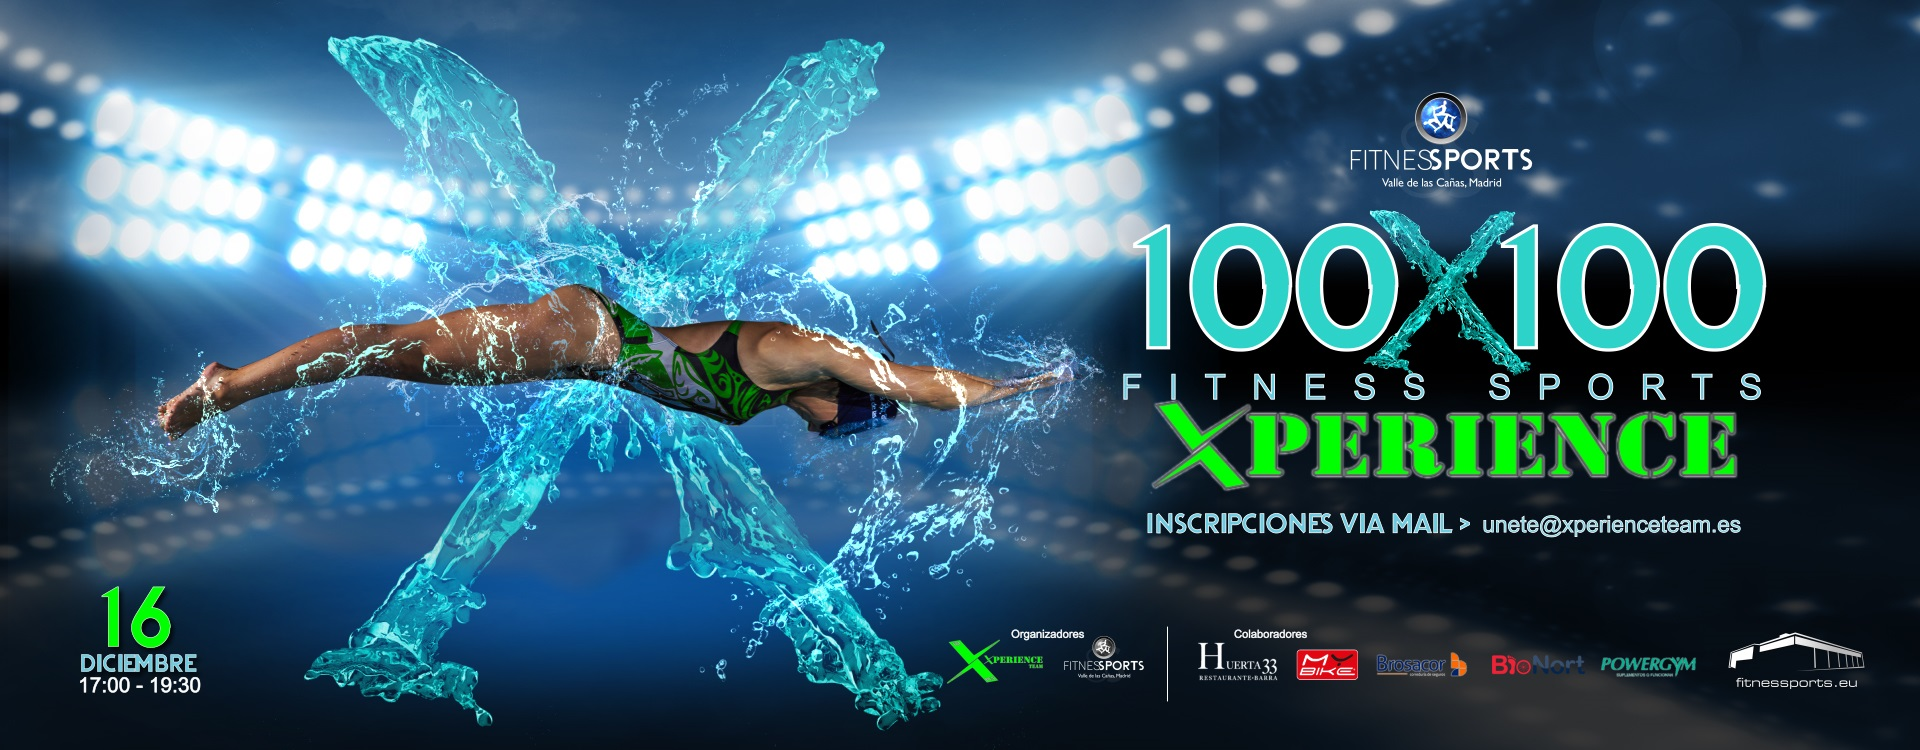 100x100 fitness sports xperience gimnasio en madrid for Gimnasio xperience